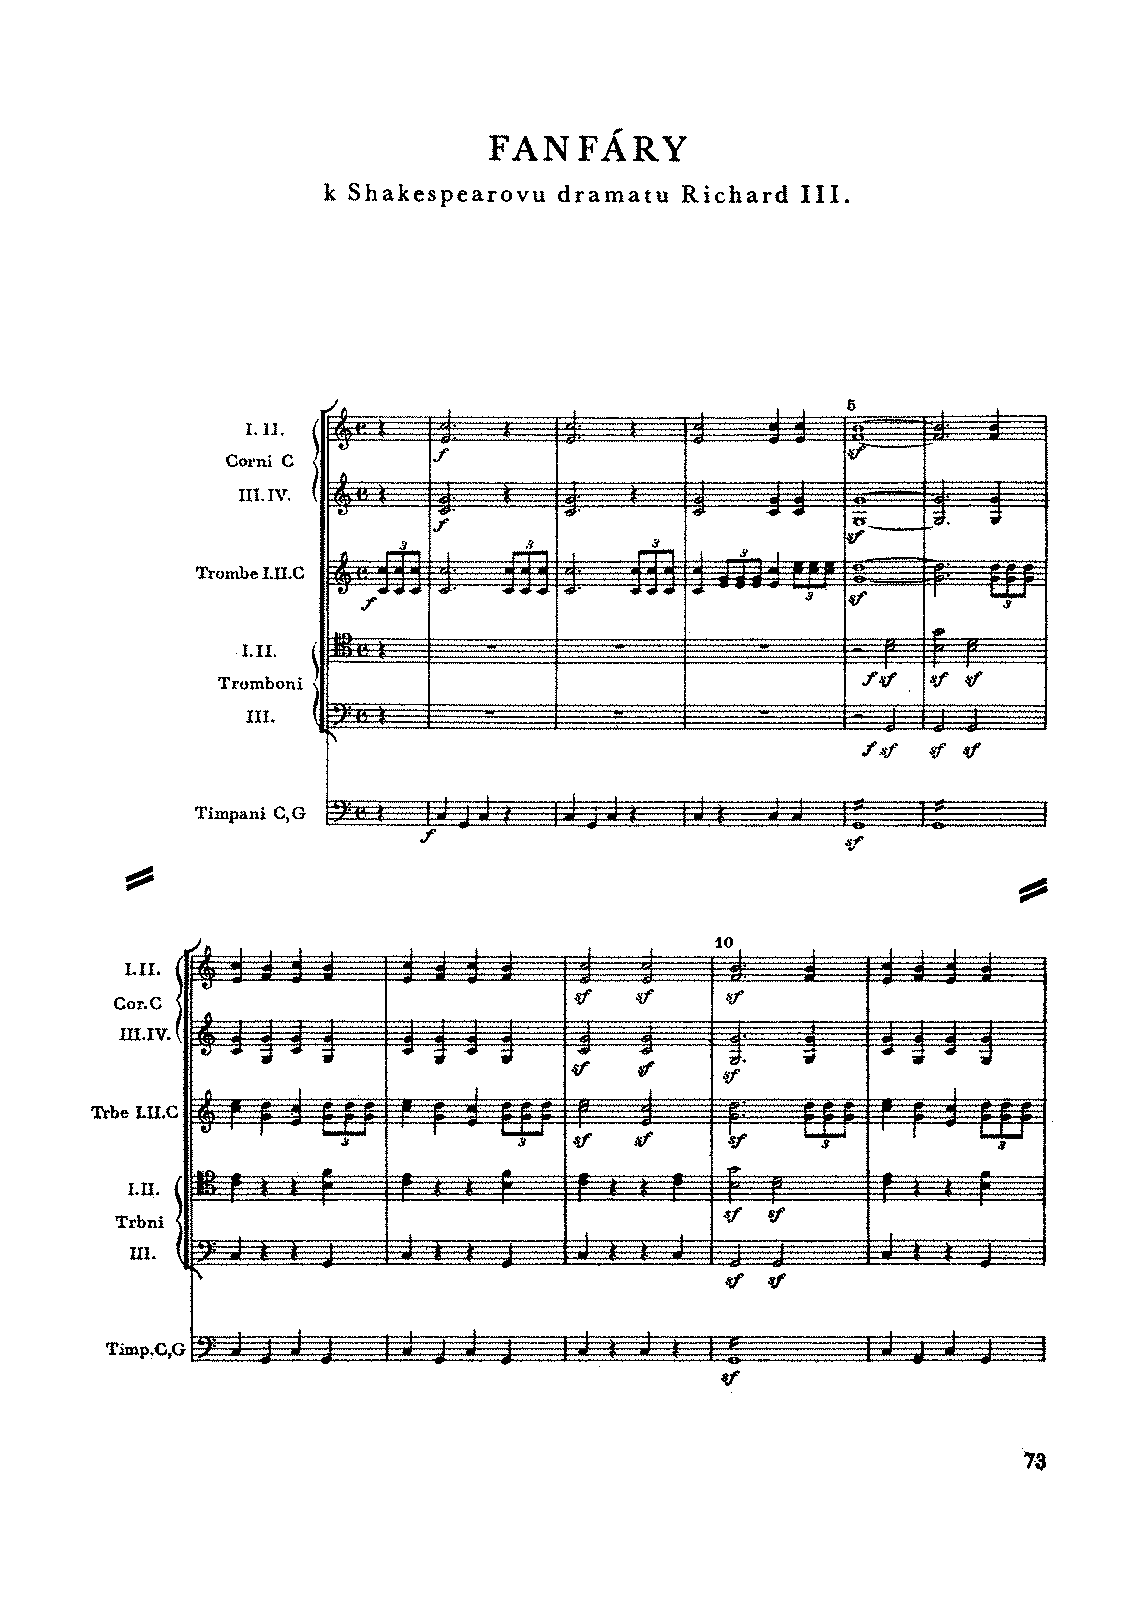 PMLP228120-Smetana - Fanfares For Shakespeare's Richard III.pdf